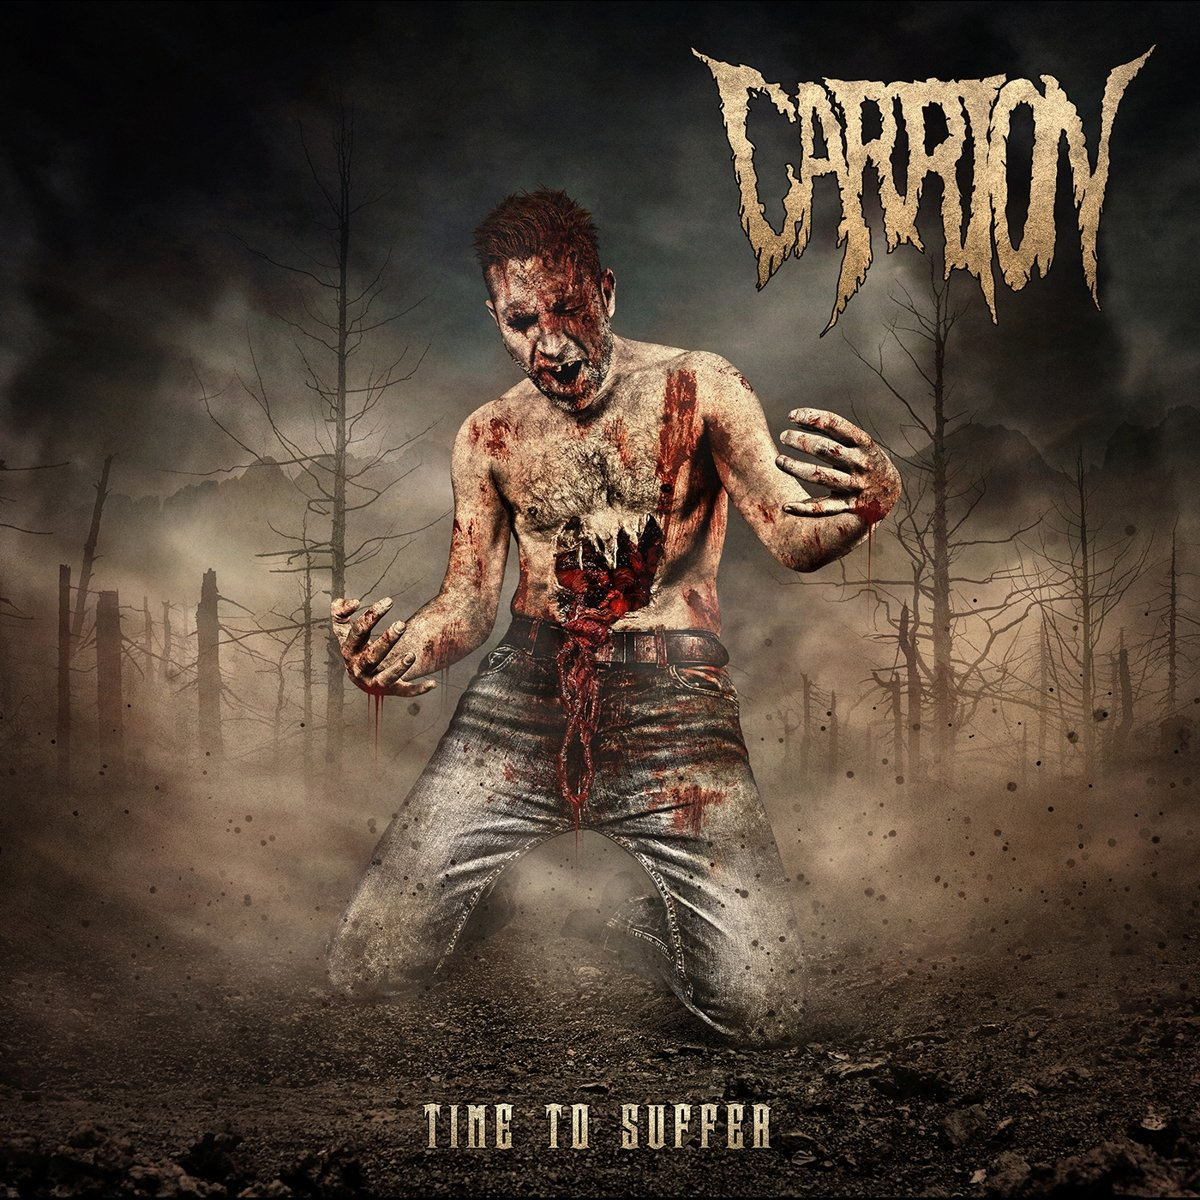 carrion time to suffer album cover